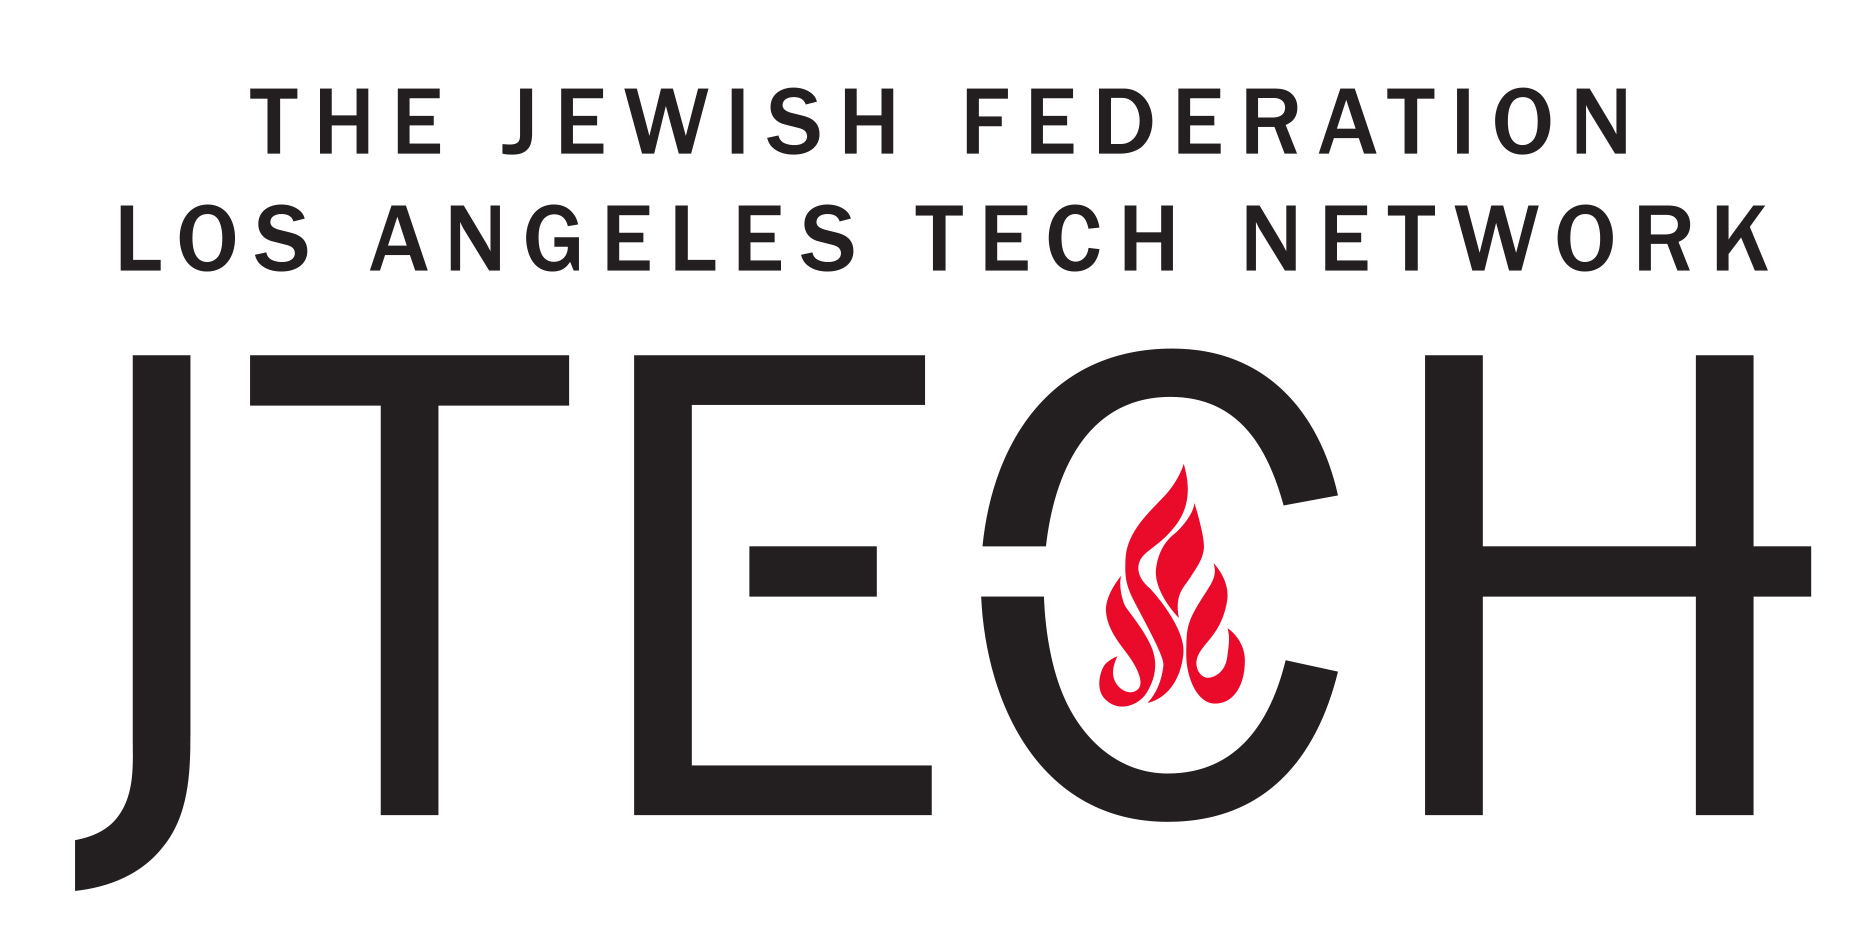 The Jewish Federation of Los Angeles Tech Network logo